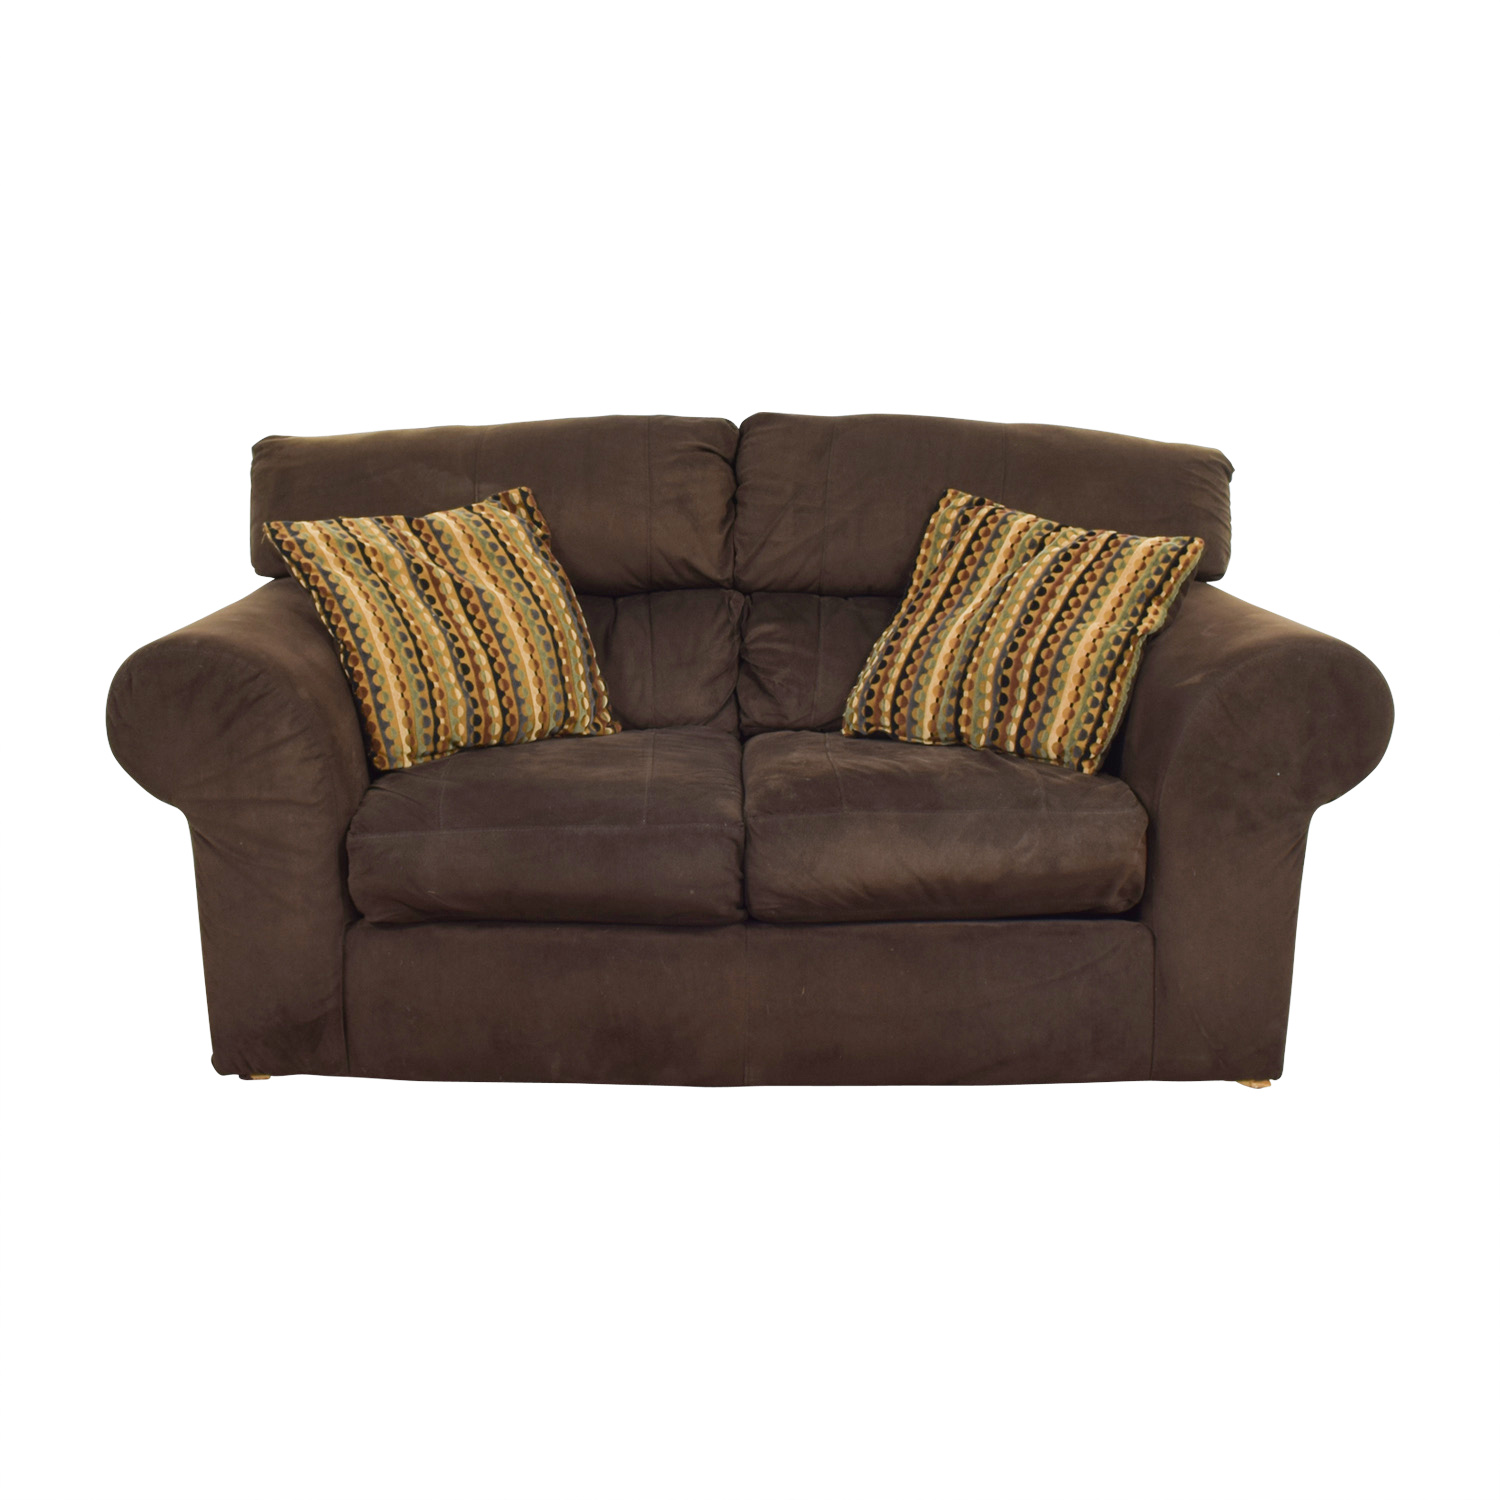 Bobs Furniture Bobs Furniture Brown Two Cushion Loveseat discount